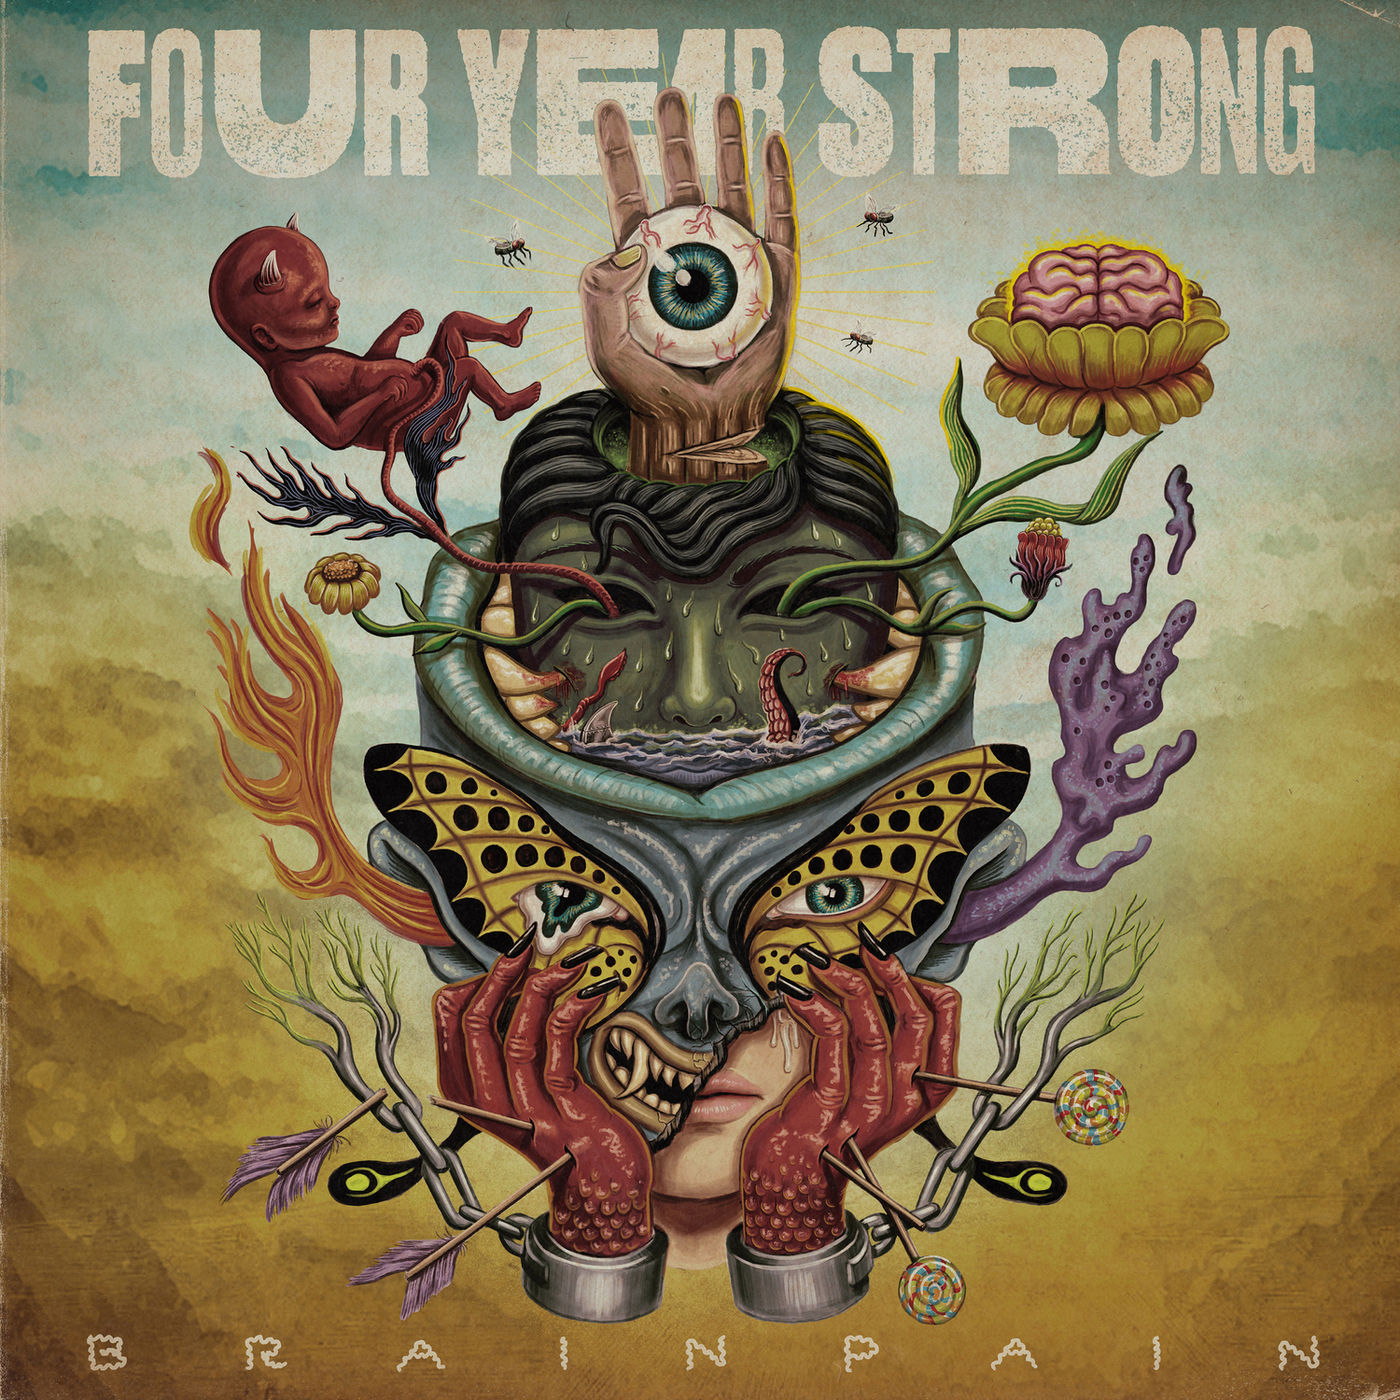 Four Year Strong - Talking Myself in Circles / Brain Pain [single] (2020)